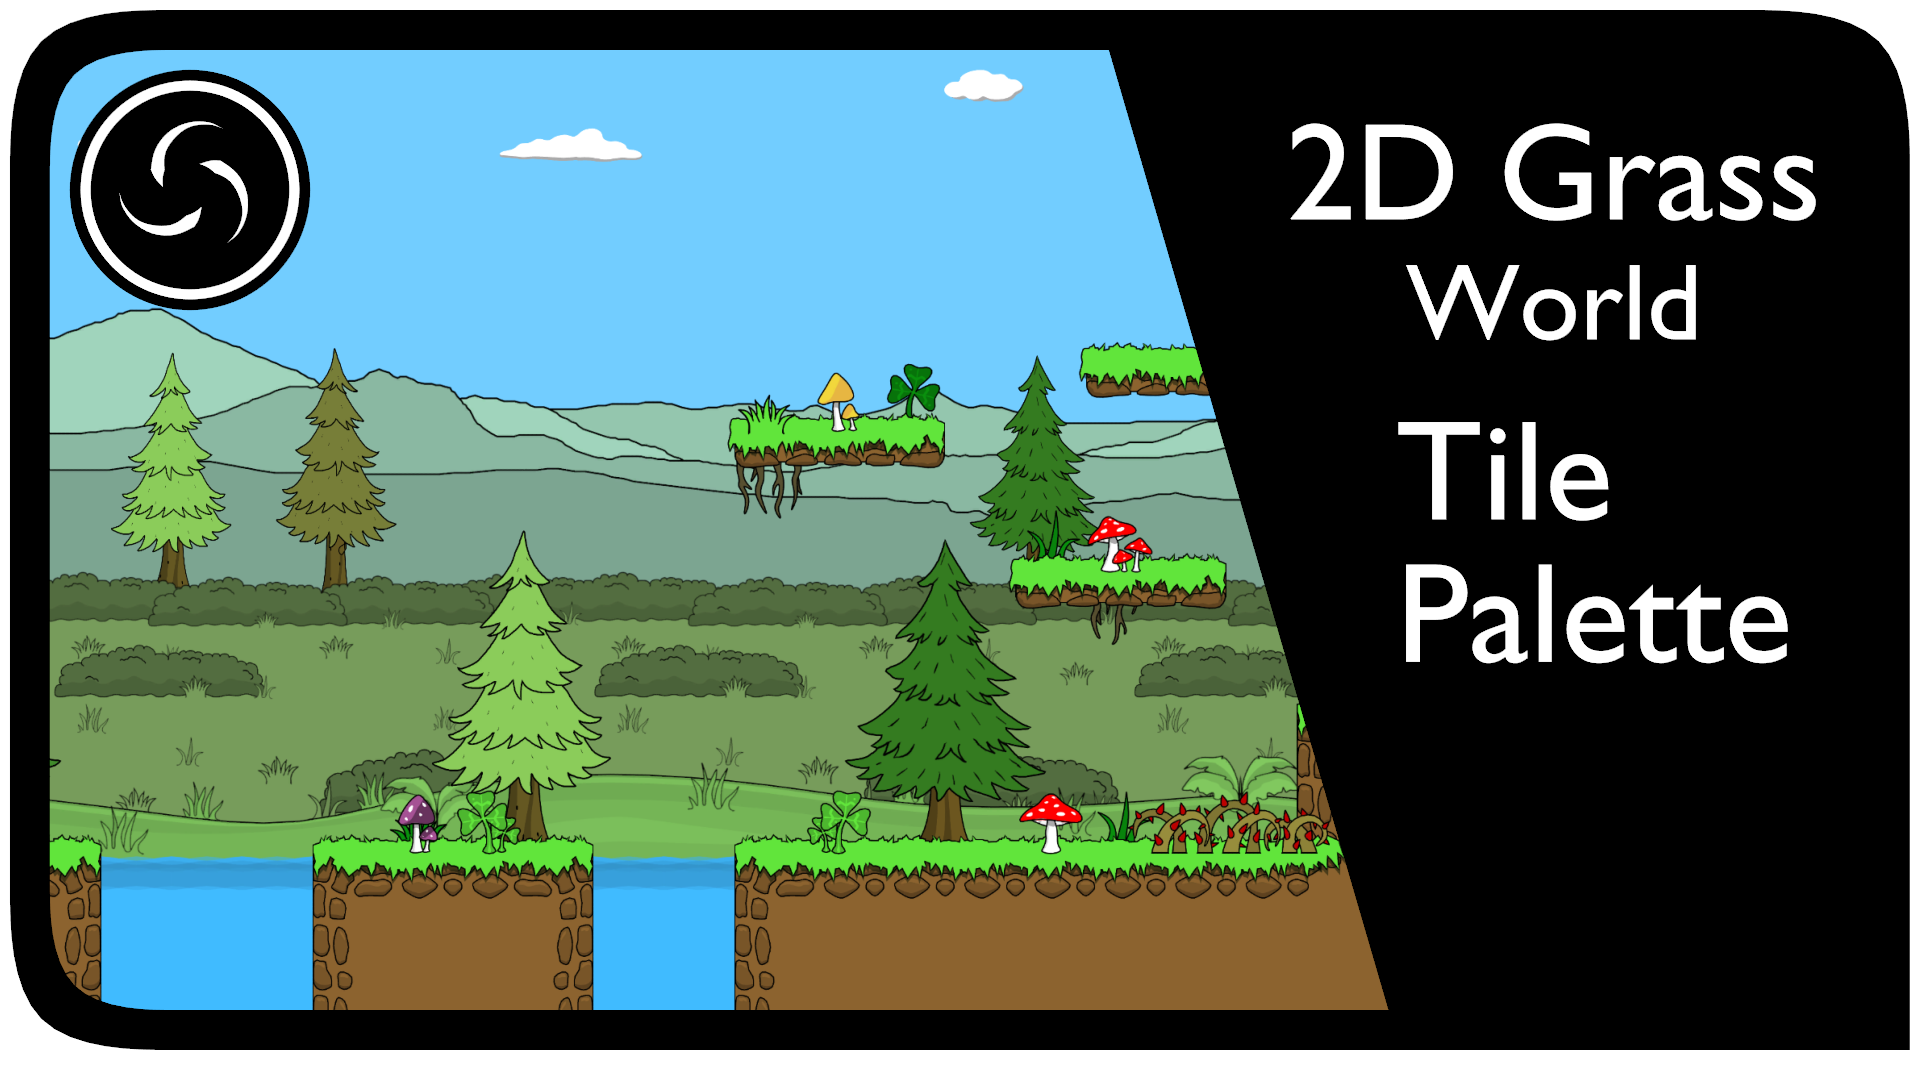 2D Grass World